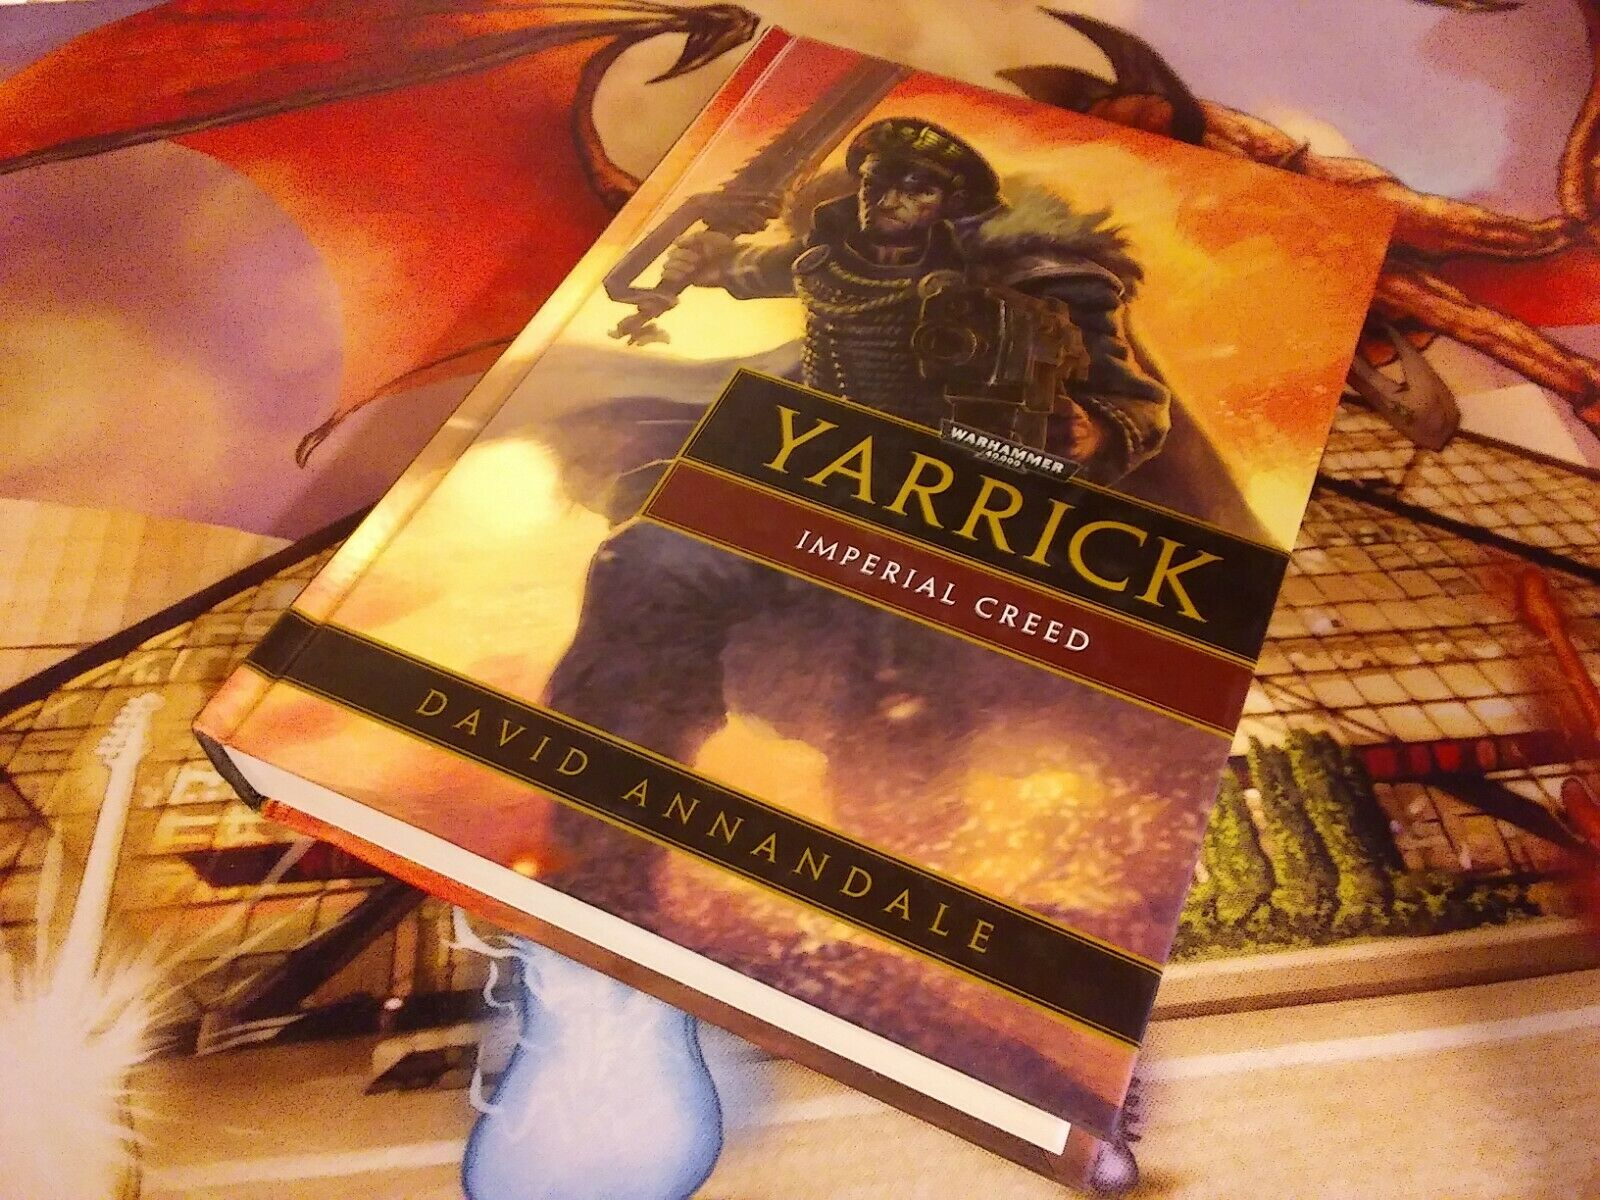 Yarrick  Imperial Creed David Annandale - Warhammer 40k Black Library  Hardcover